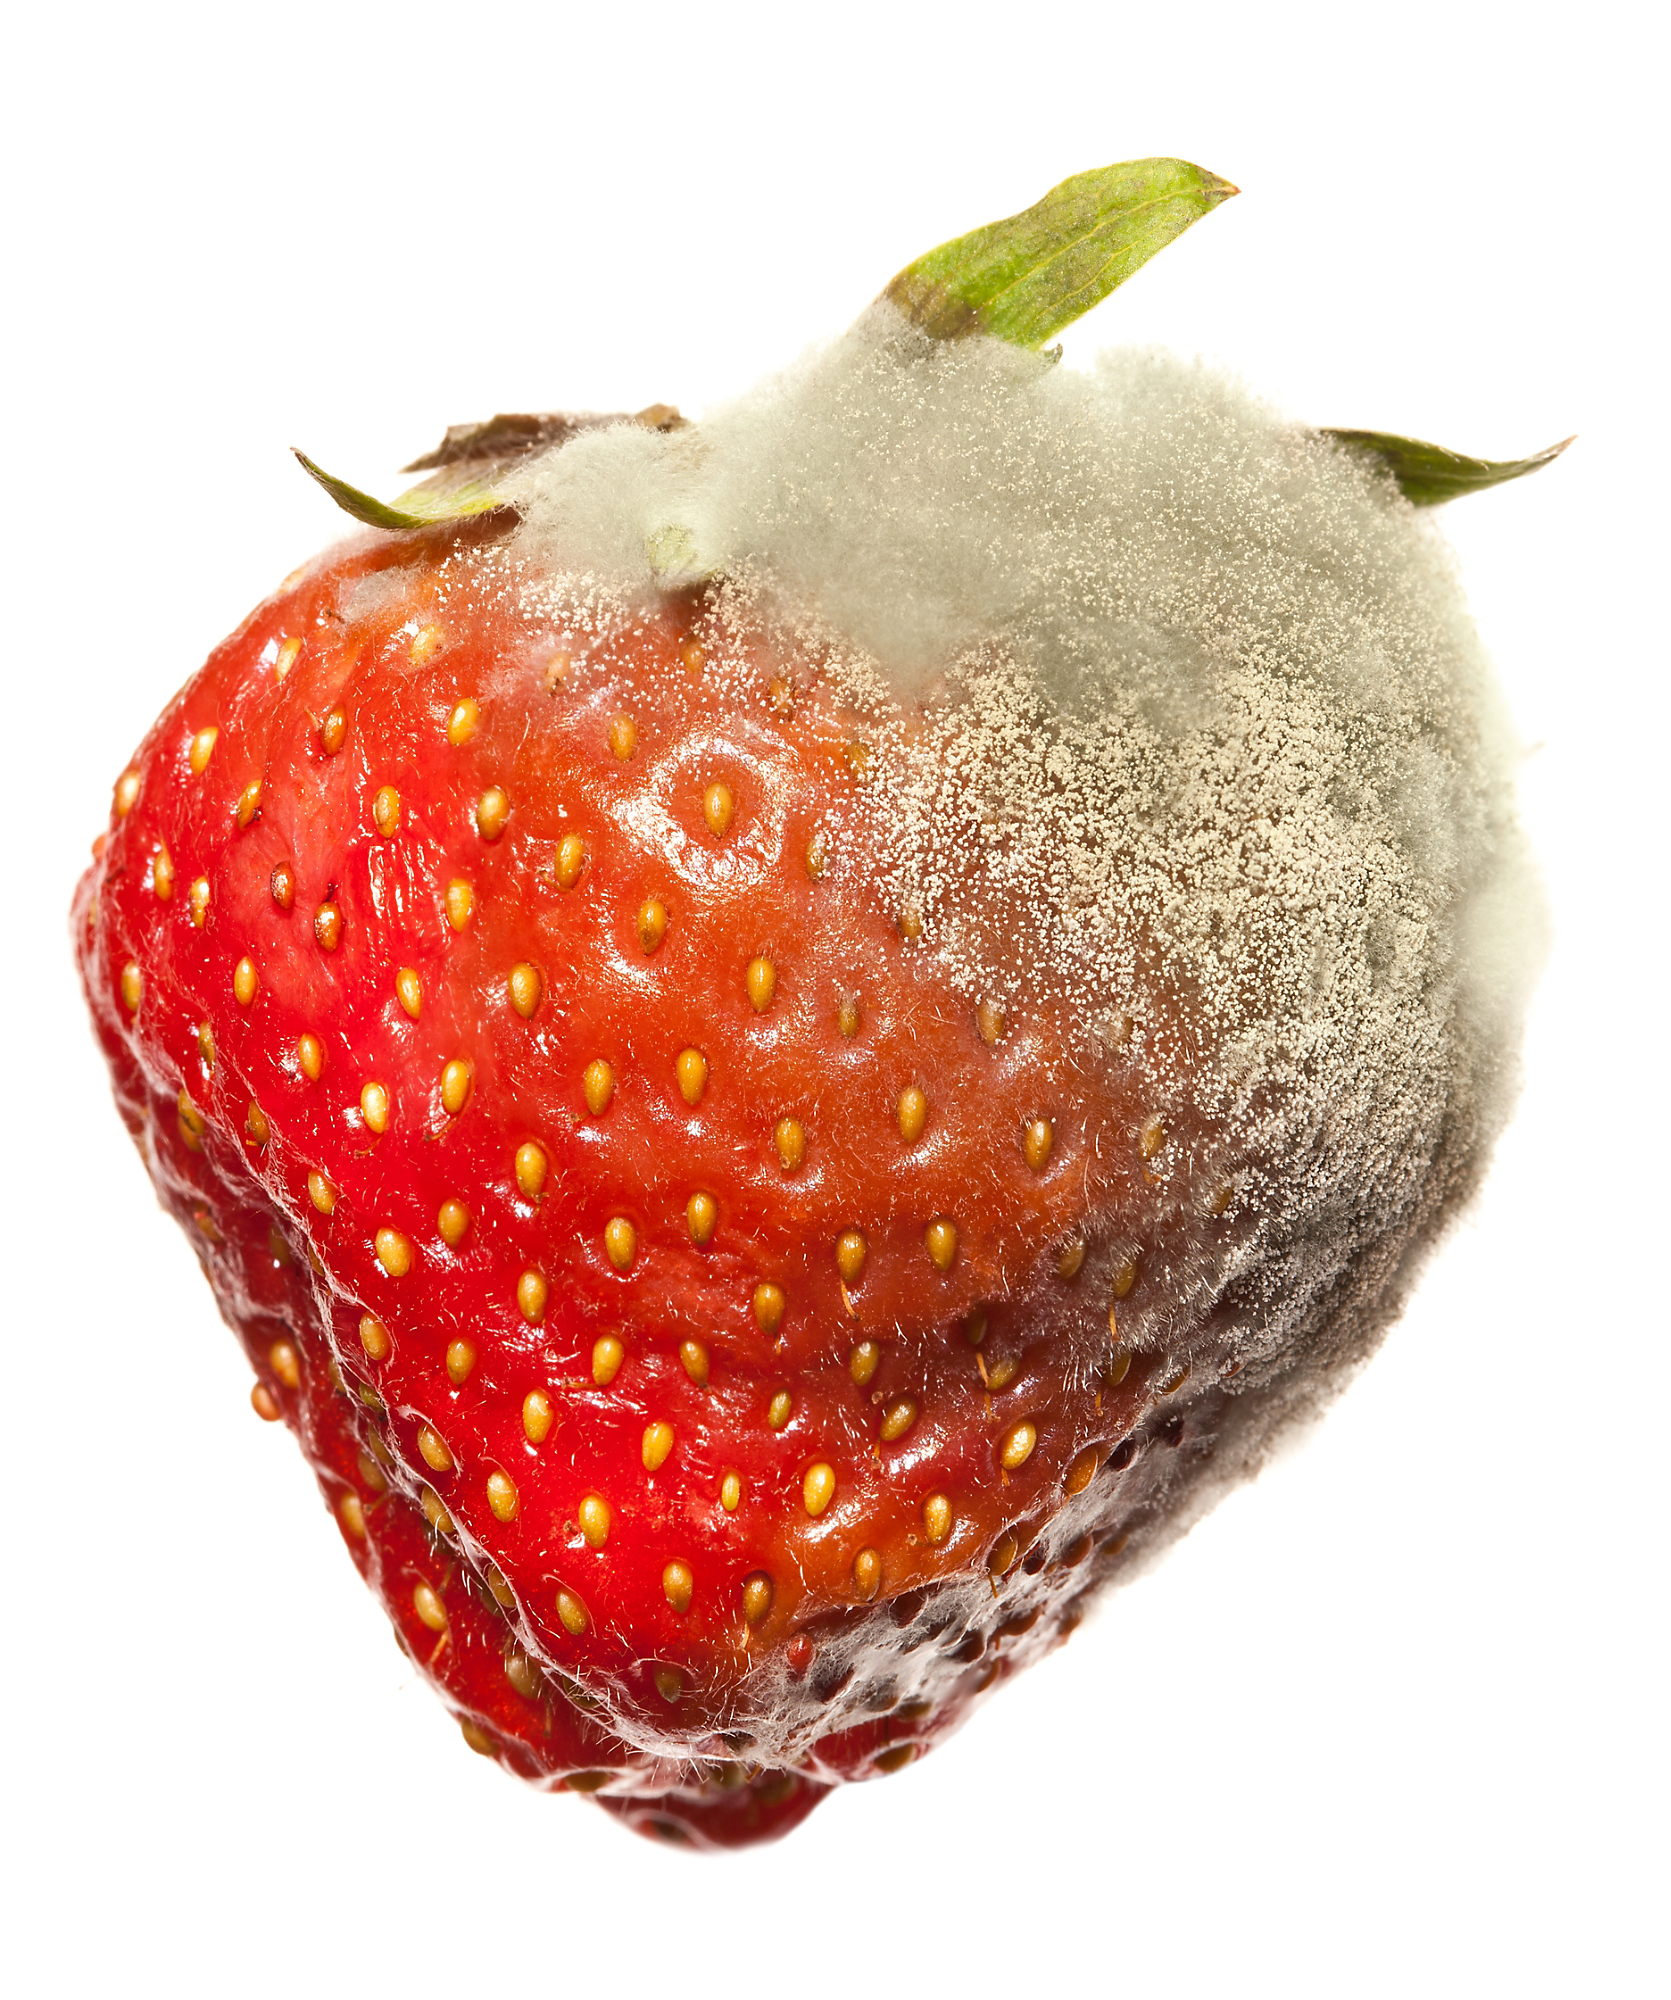 Fungus on a strawberry